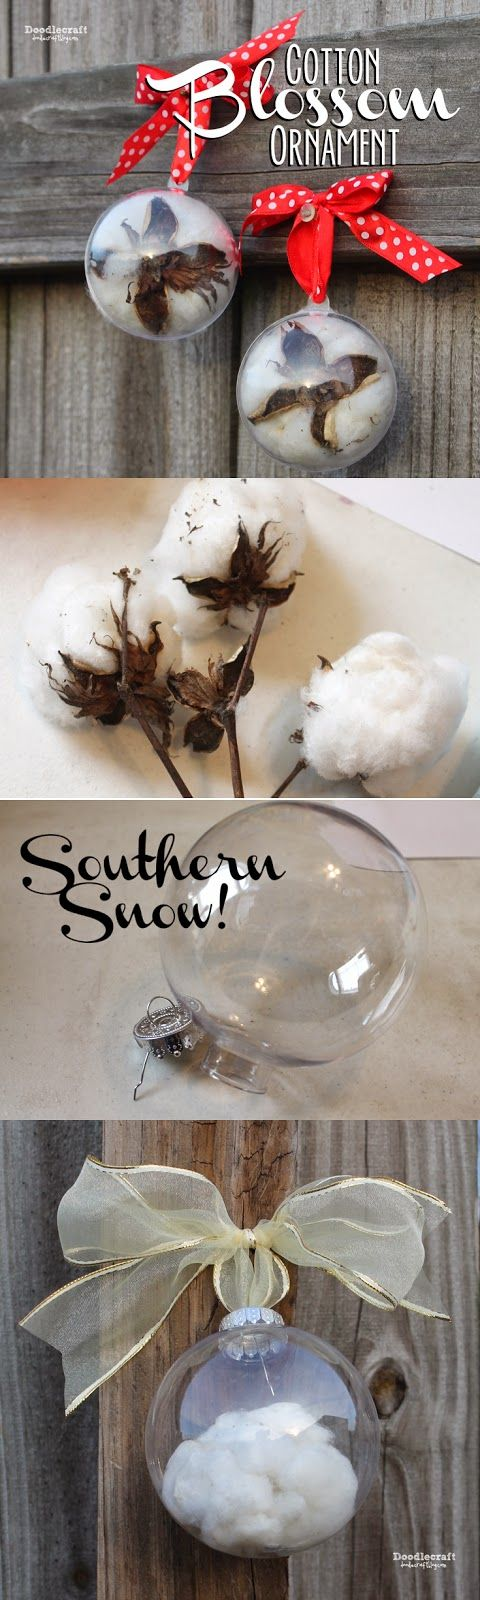 CHRISTMAS IN JULY: Cotton Blossom Ornament!